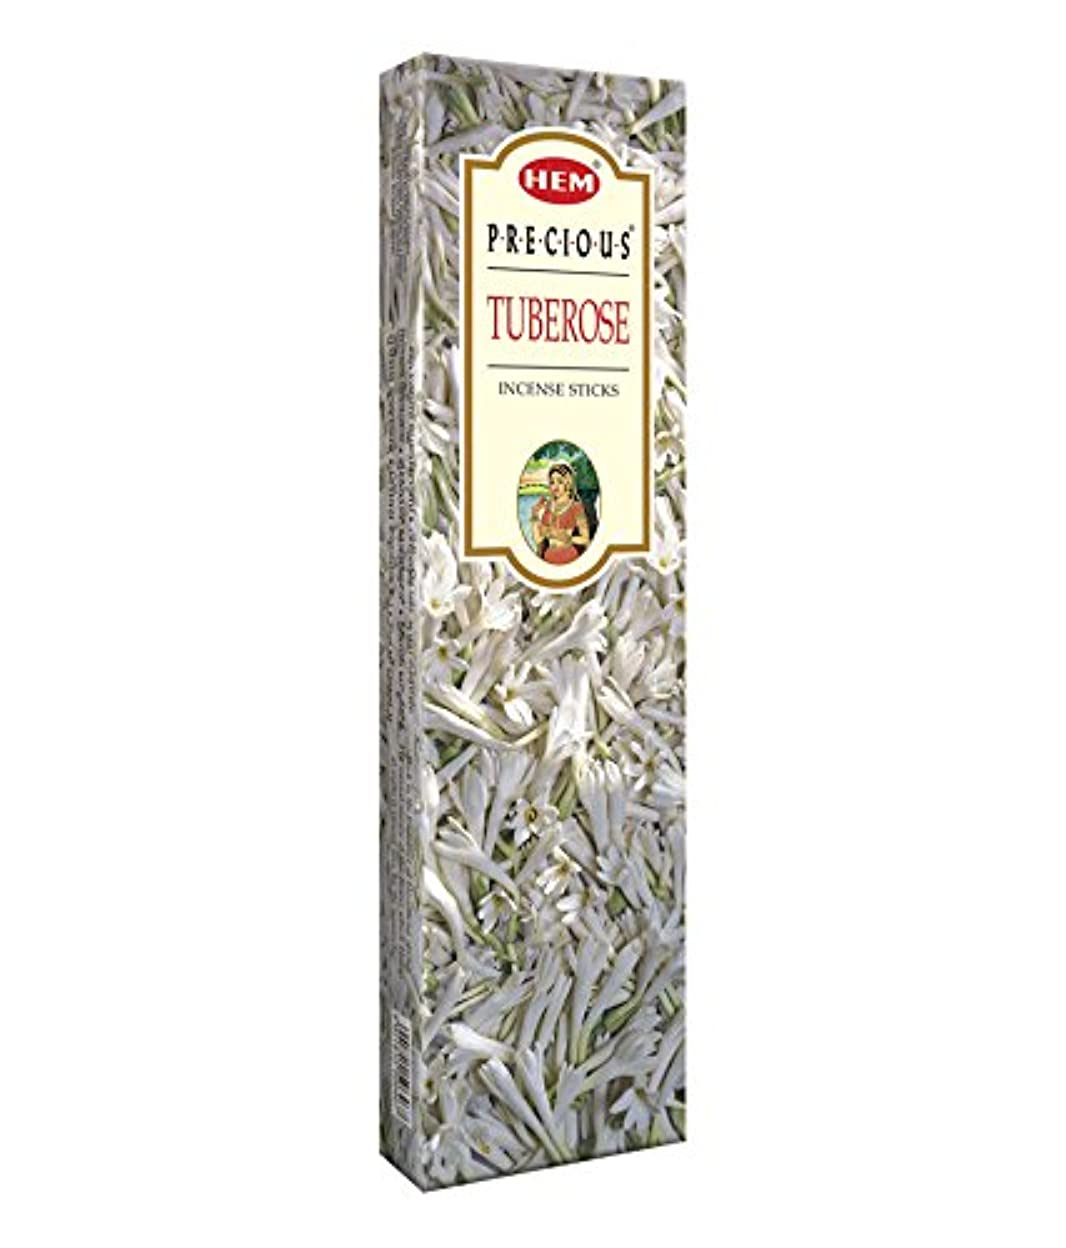 パラダイス荒廃する多用途Agarbathi Fragrance Hem Precious Tuberose 100?g INCENSE STICKS